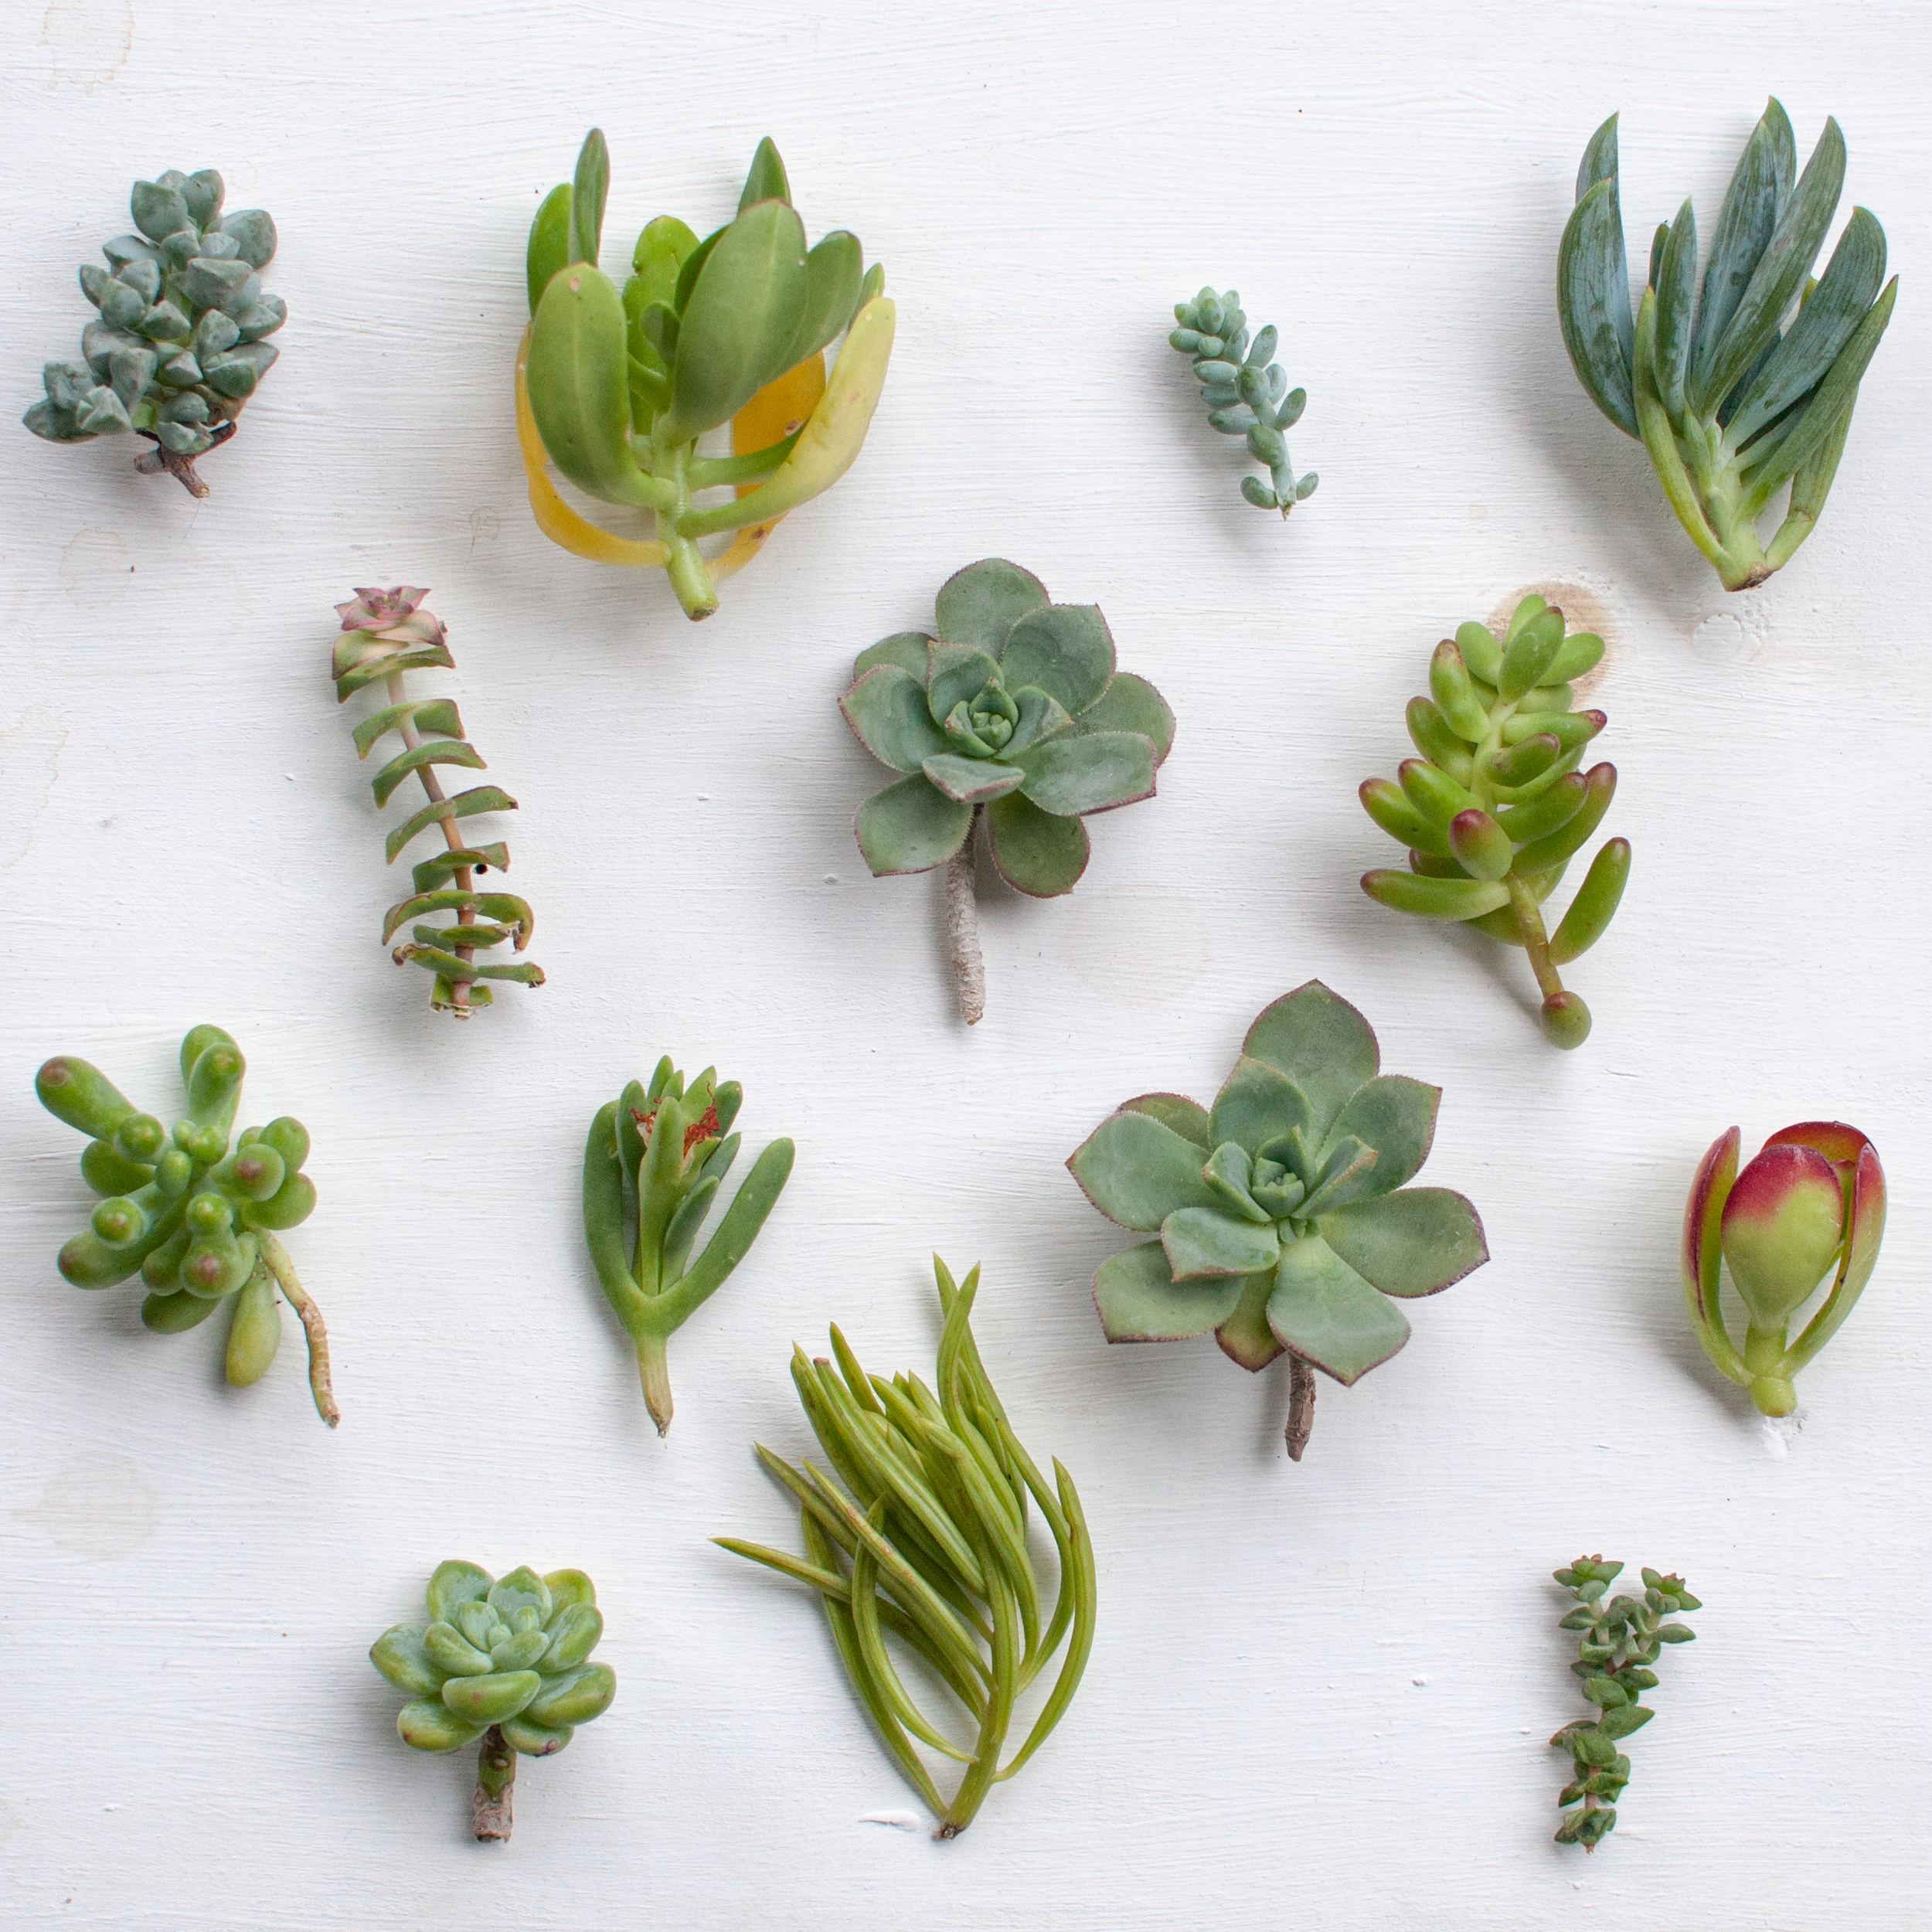 Succulent clippings from Corona Succulents.